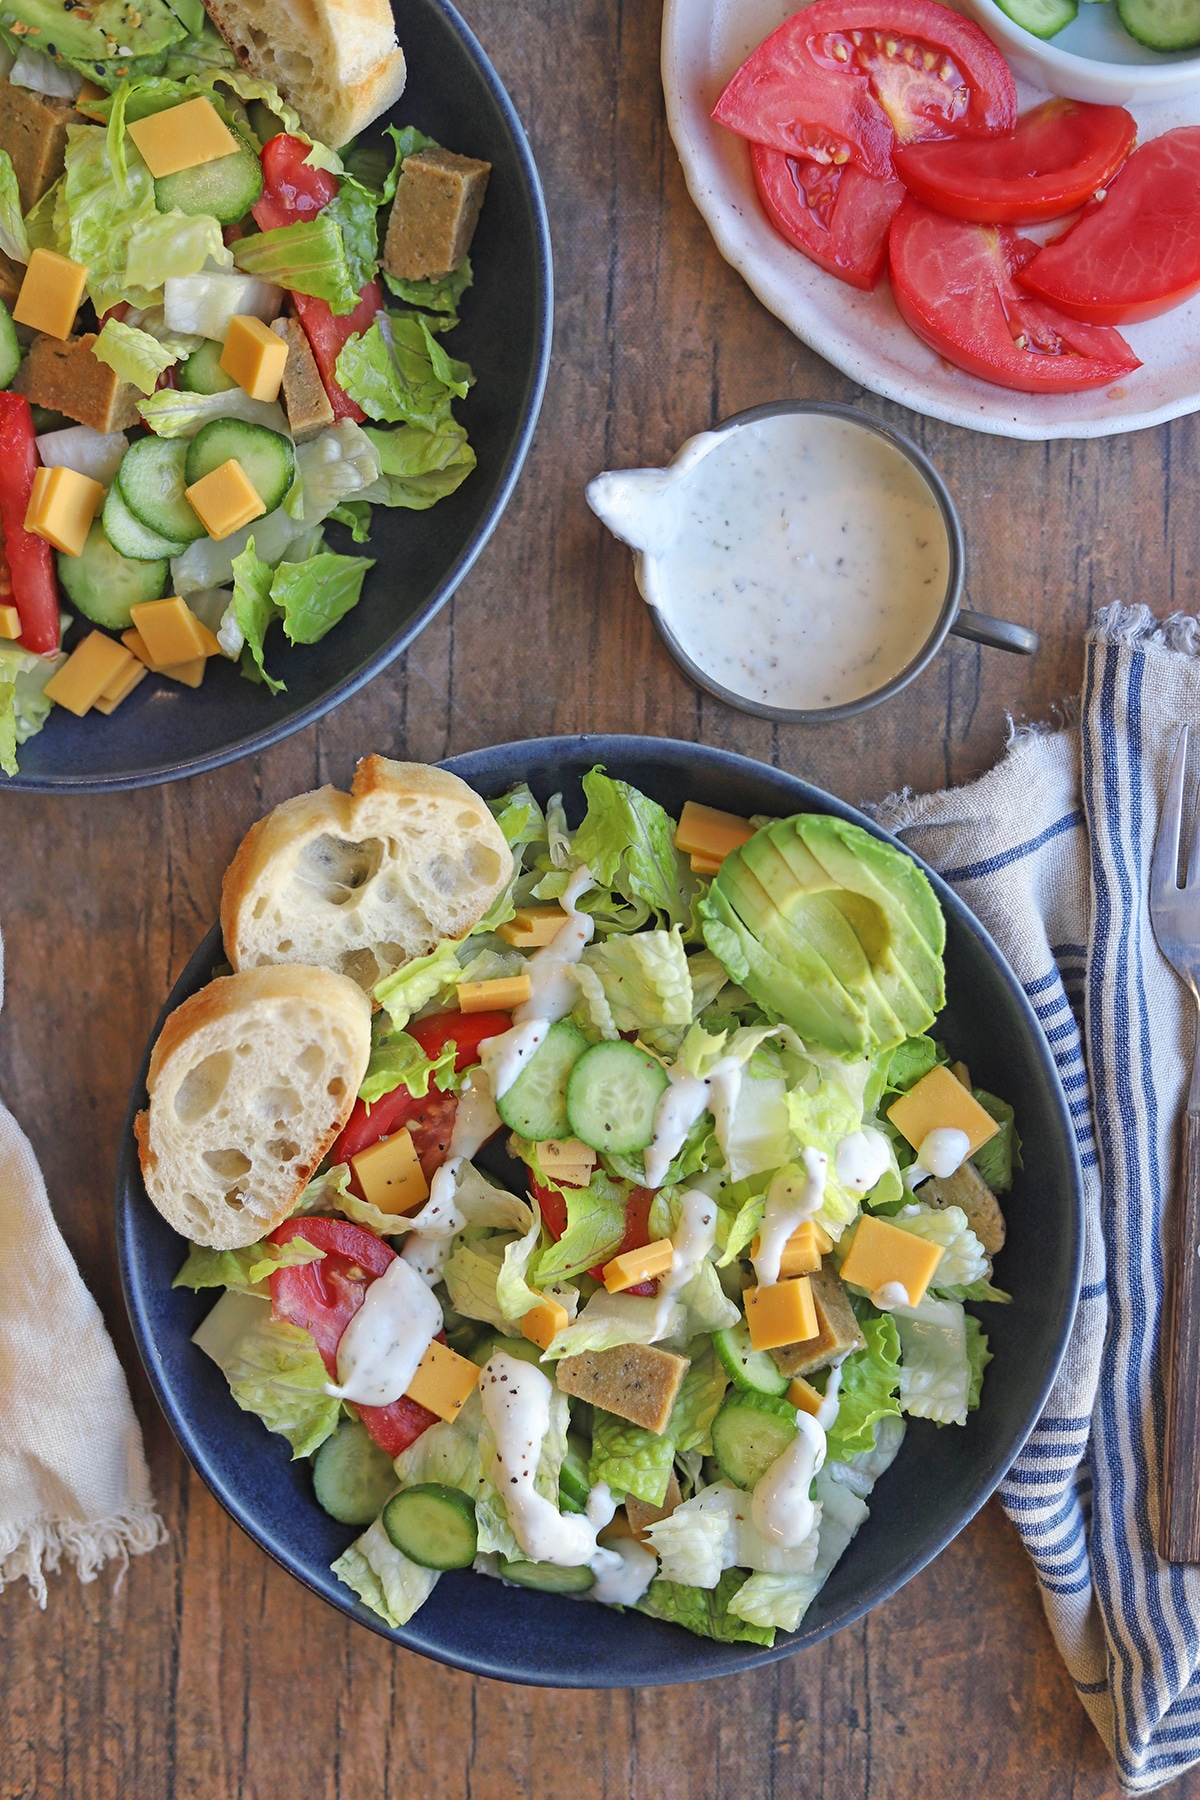 Overhead chef salads in bowl by dressing.